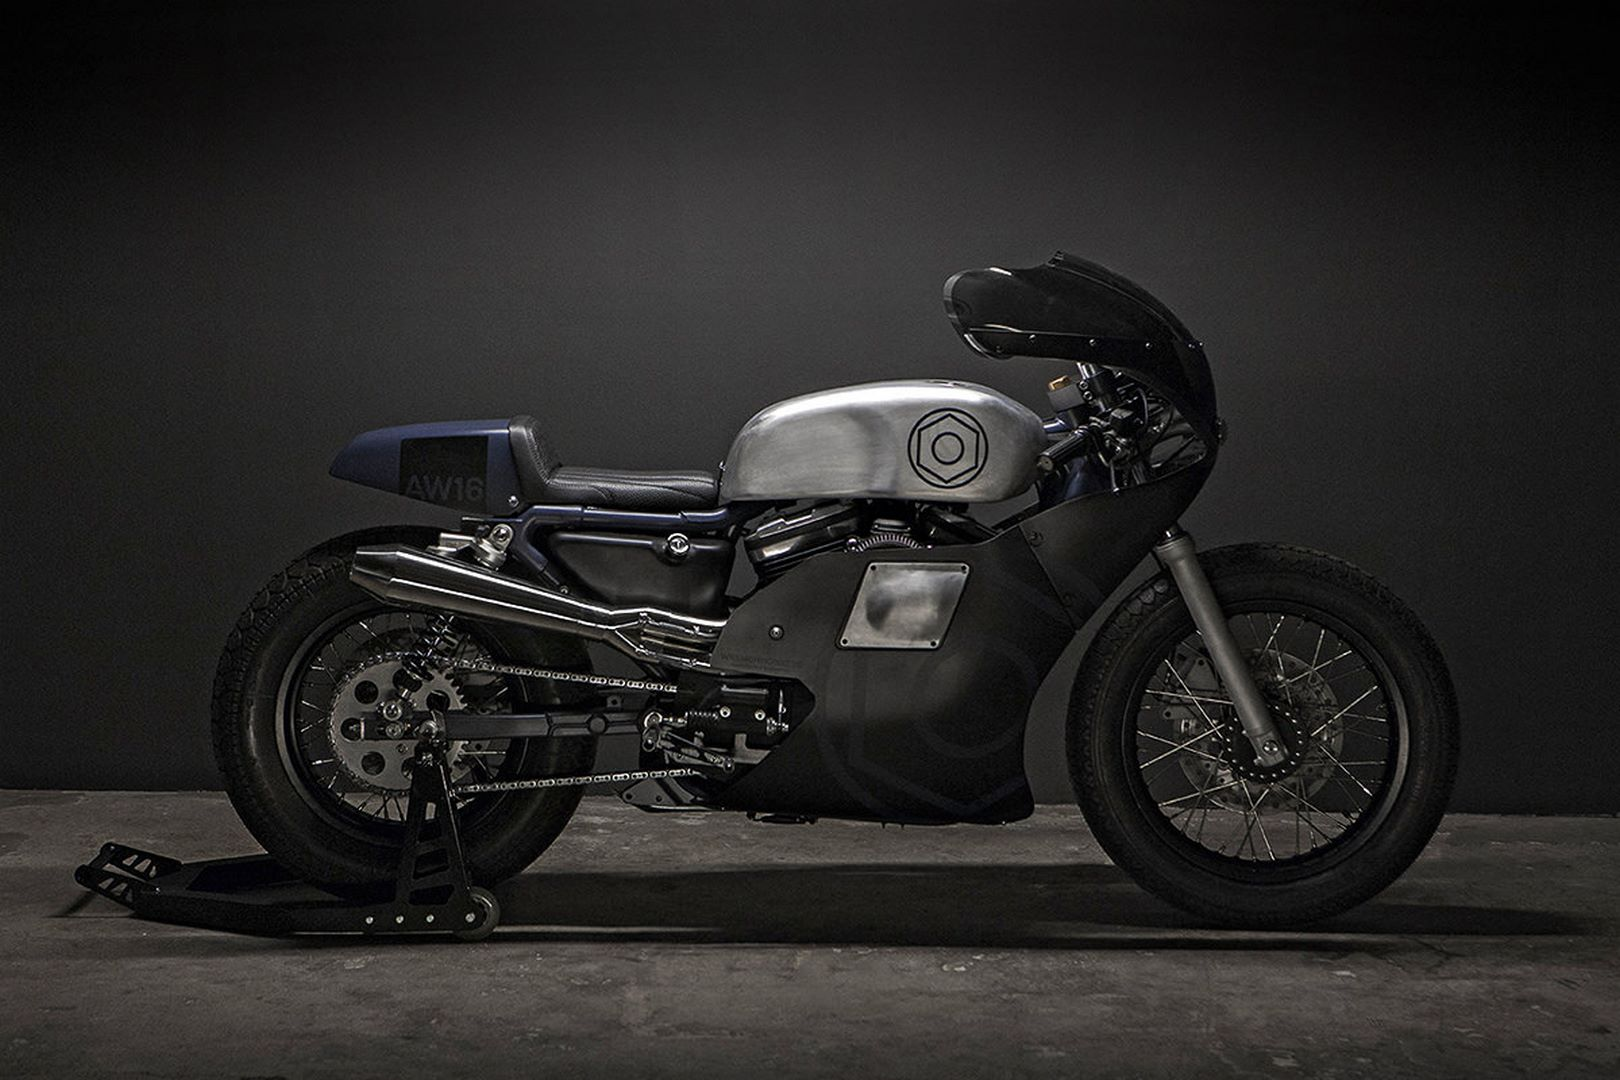 """Harley Davidson Sportster 883 """"AW16"""" (Wrenchmonkees) - CafeRaceros"""